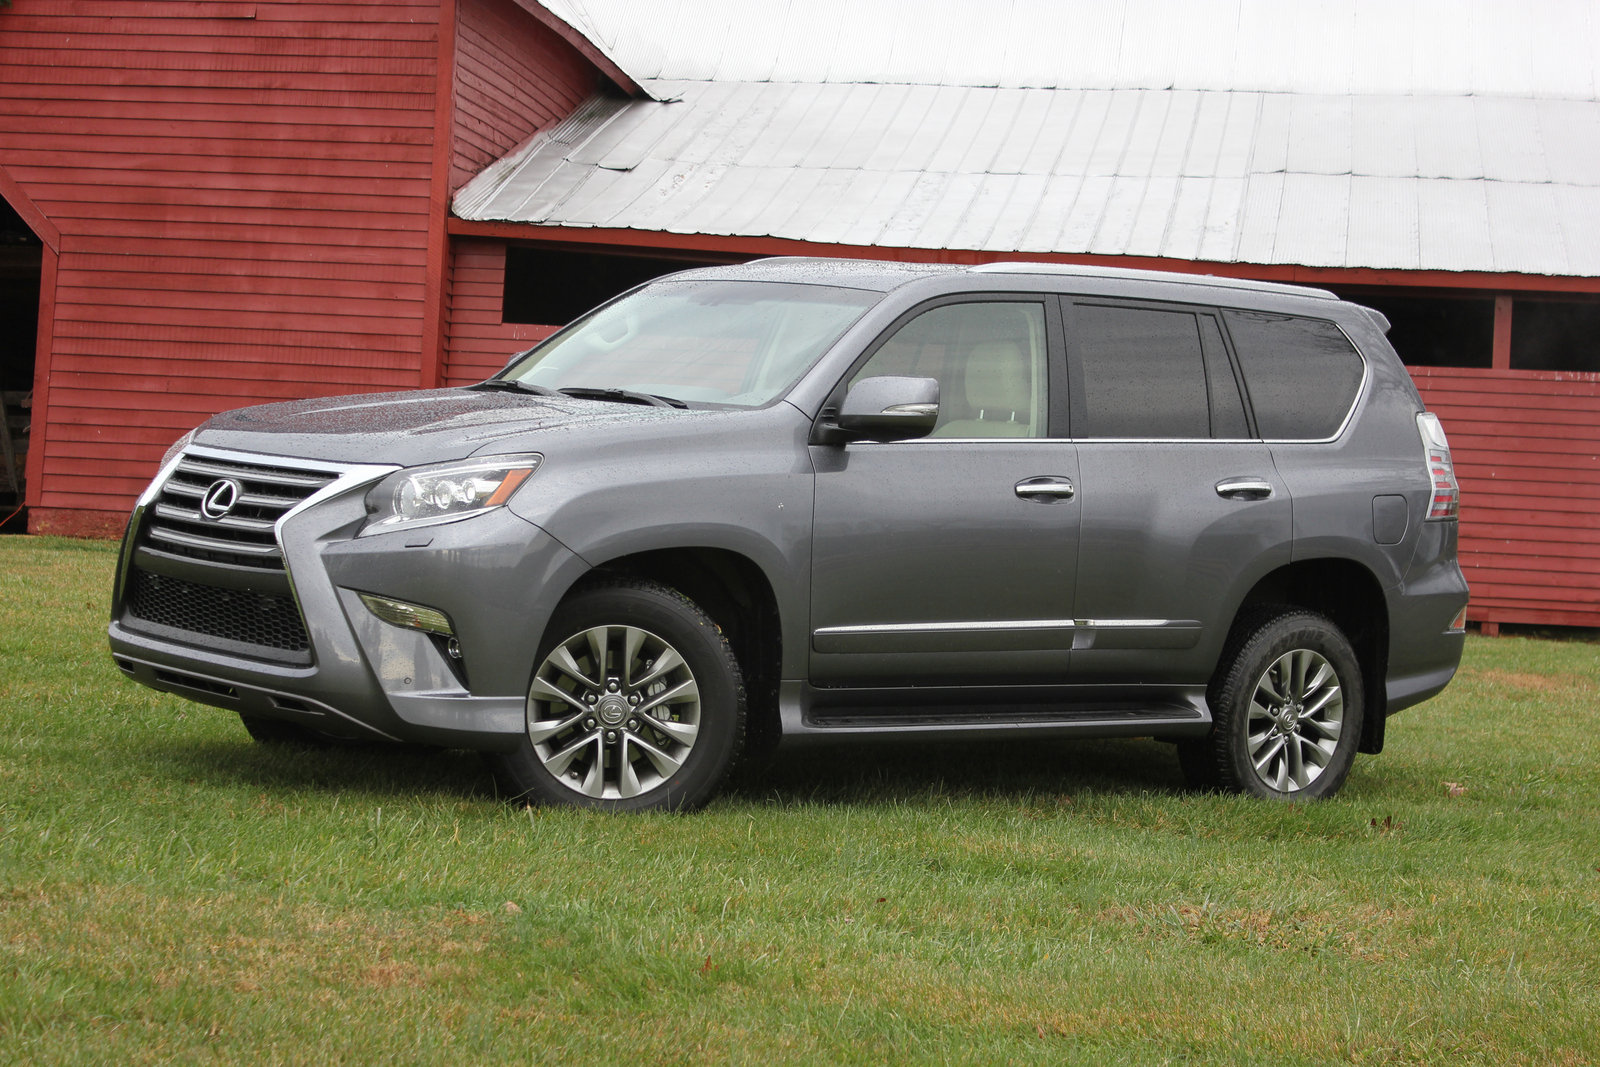 2015 lexus gx 460 driven picture 608257 car review top speed. Black Bedroom Furniture Sets. Home Design Ideas